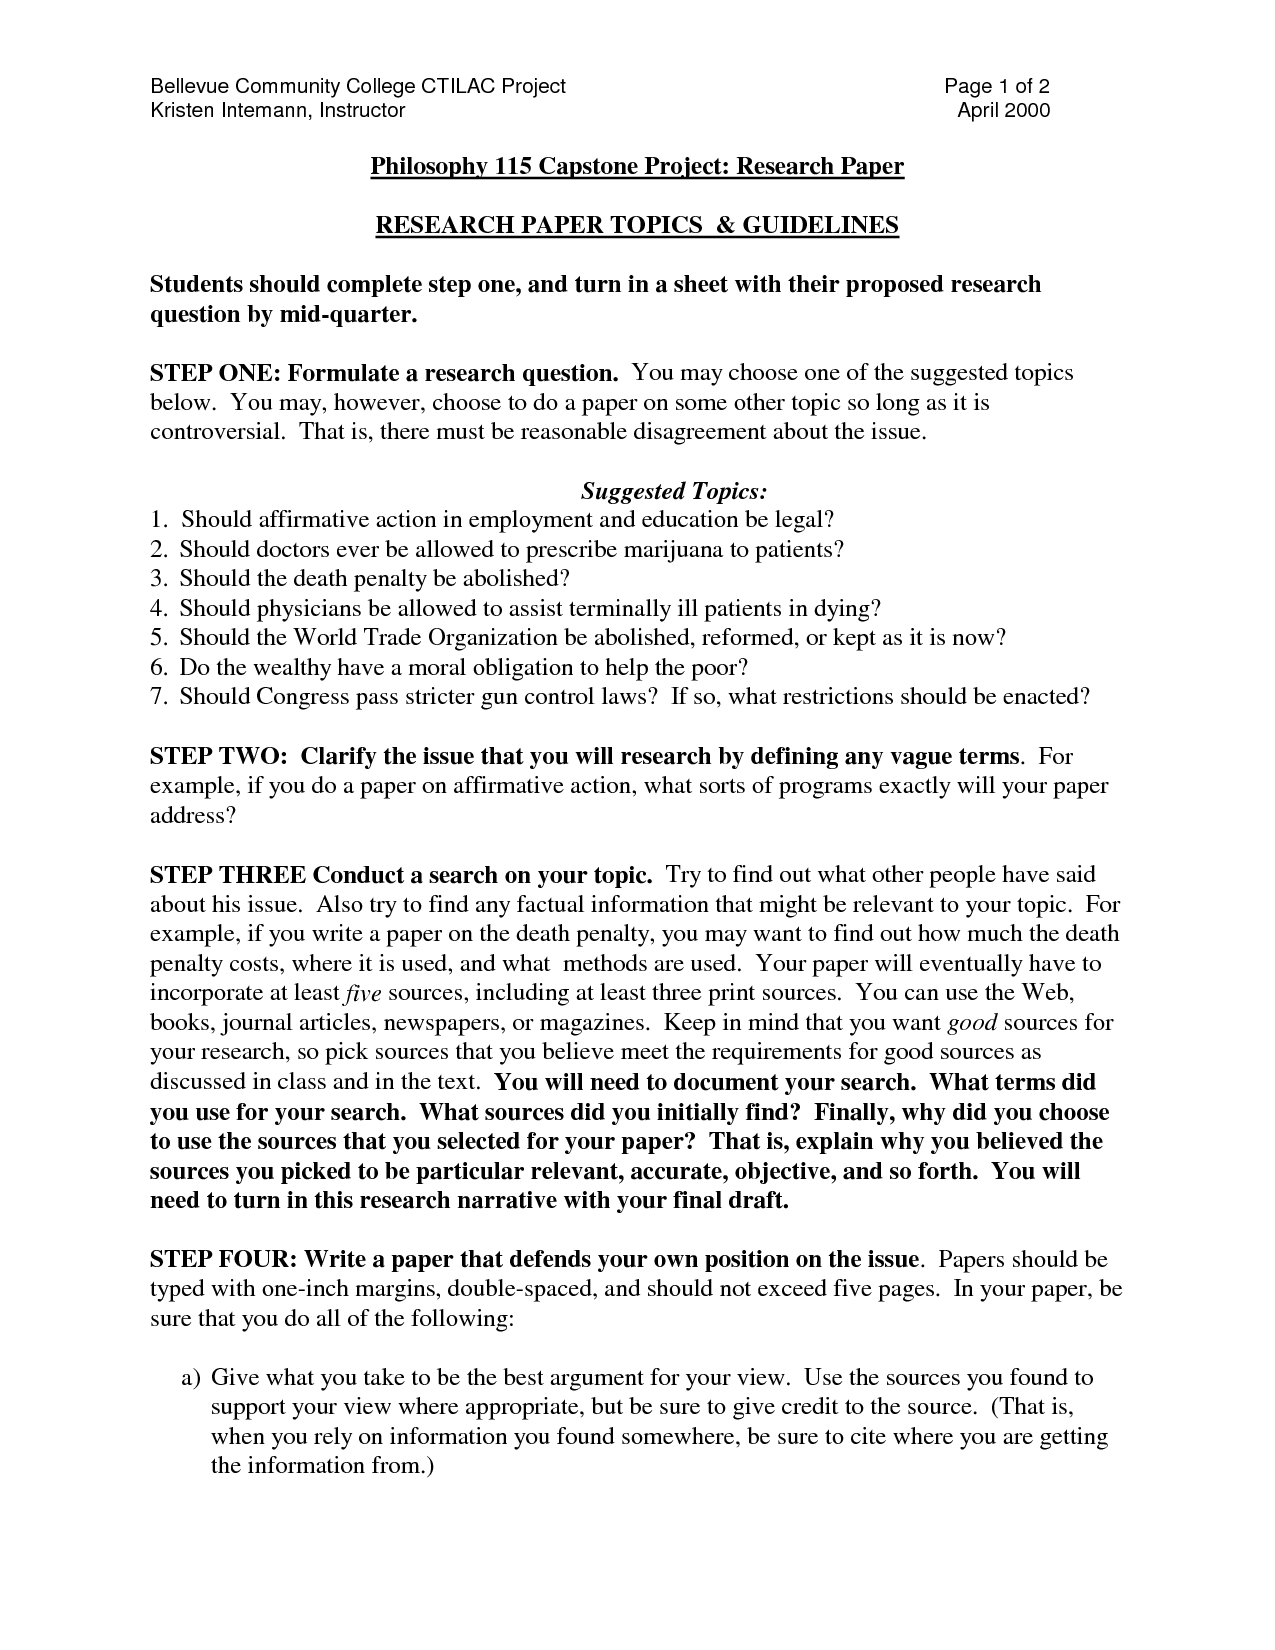 003 Research Paper Yg32qgw3ao Example Of College Incredible Level Mla Format Outline Sample Academic Full